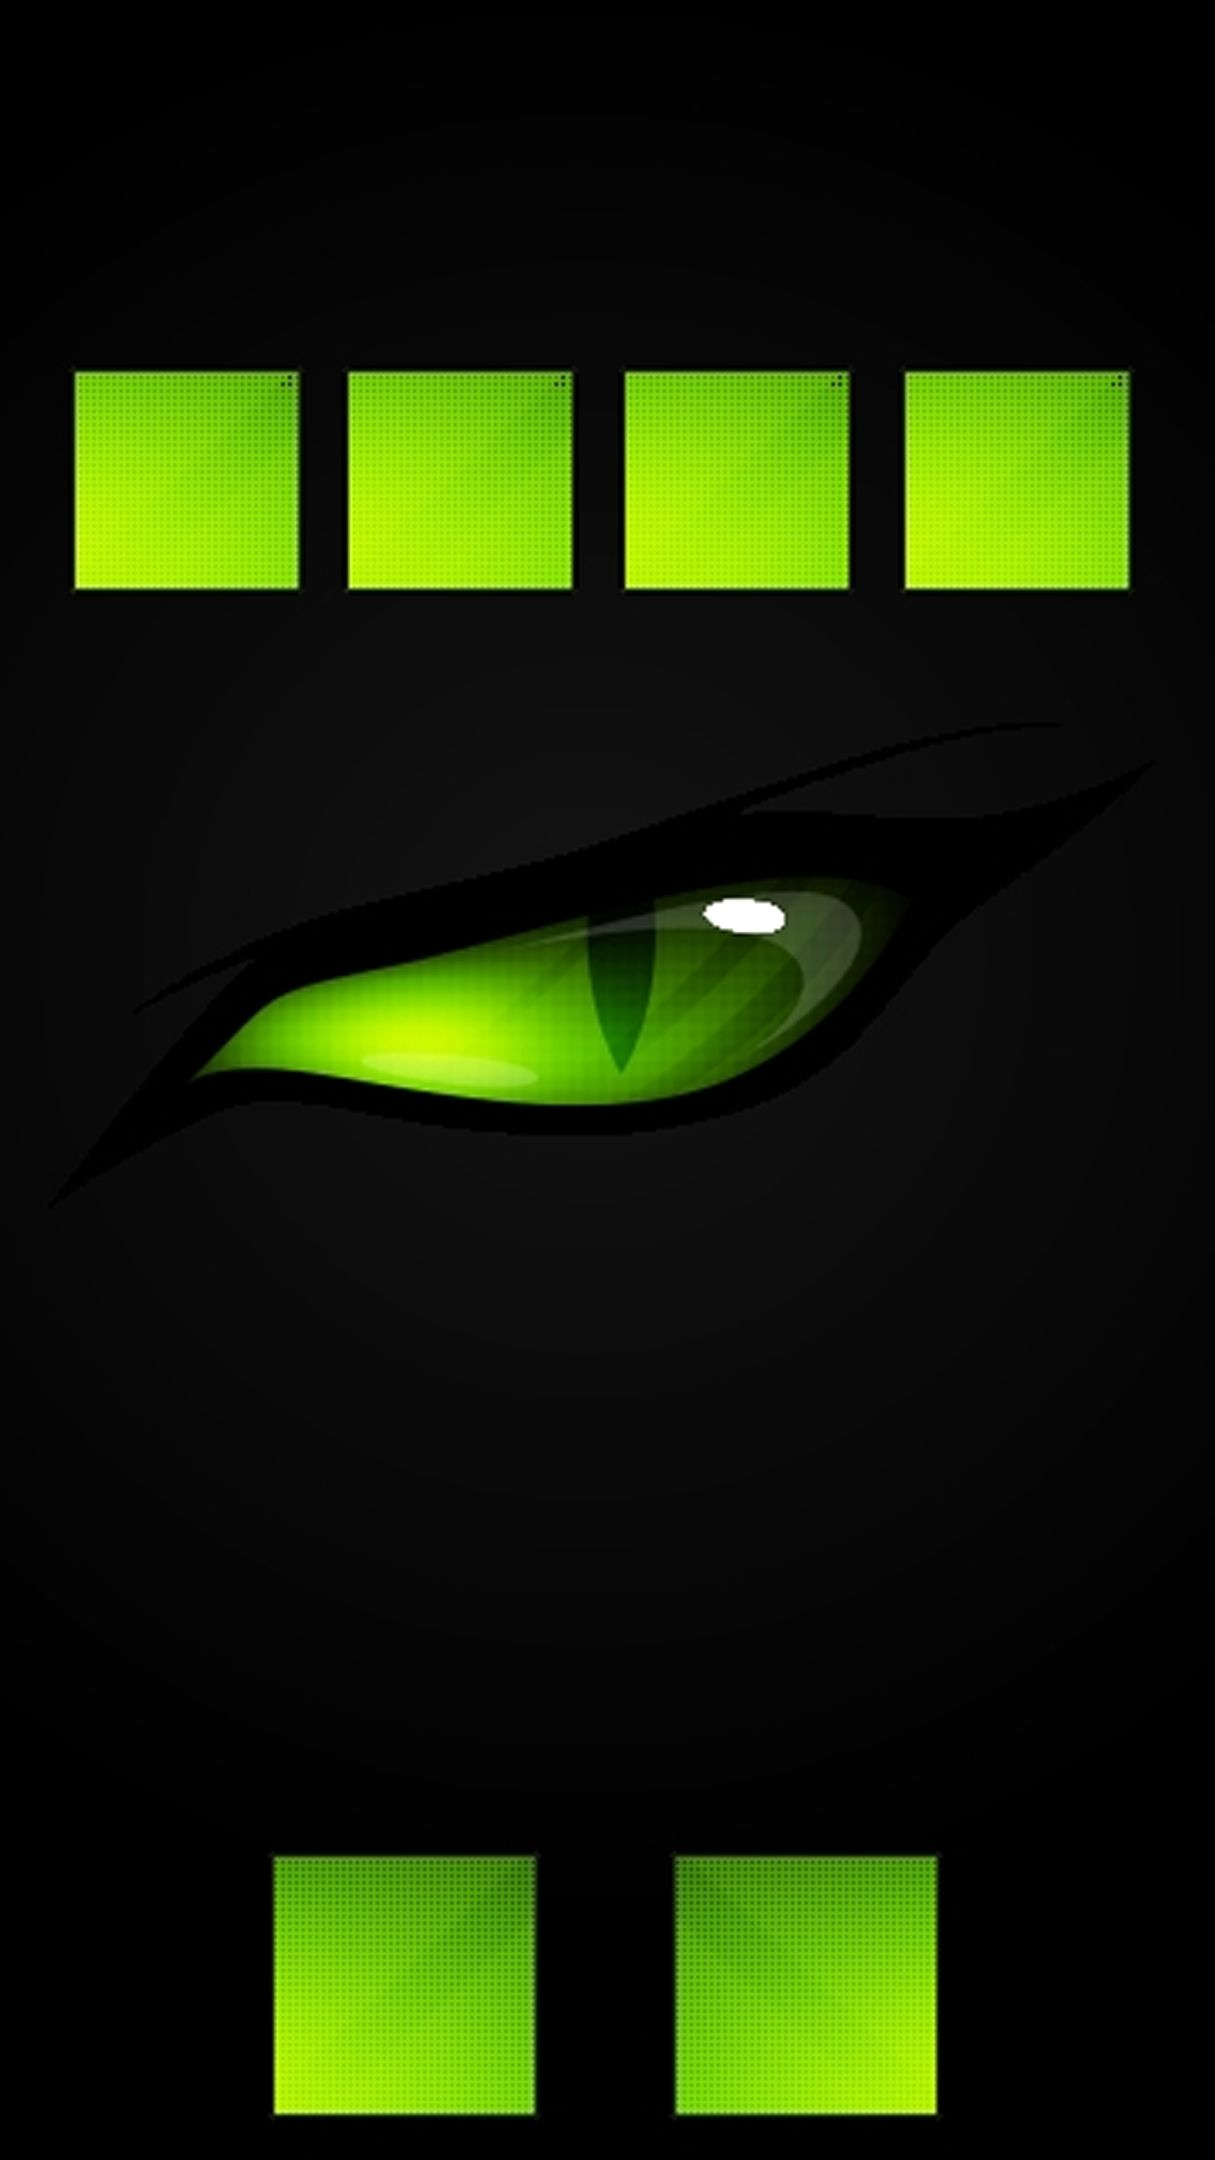 Wallpaper For Android خلفيات Hd للاندرويد Tecnologis Android Wallpaper Wallpaper Android